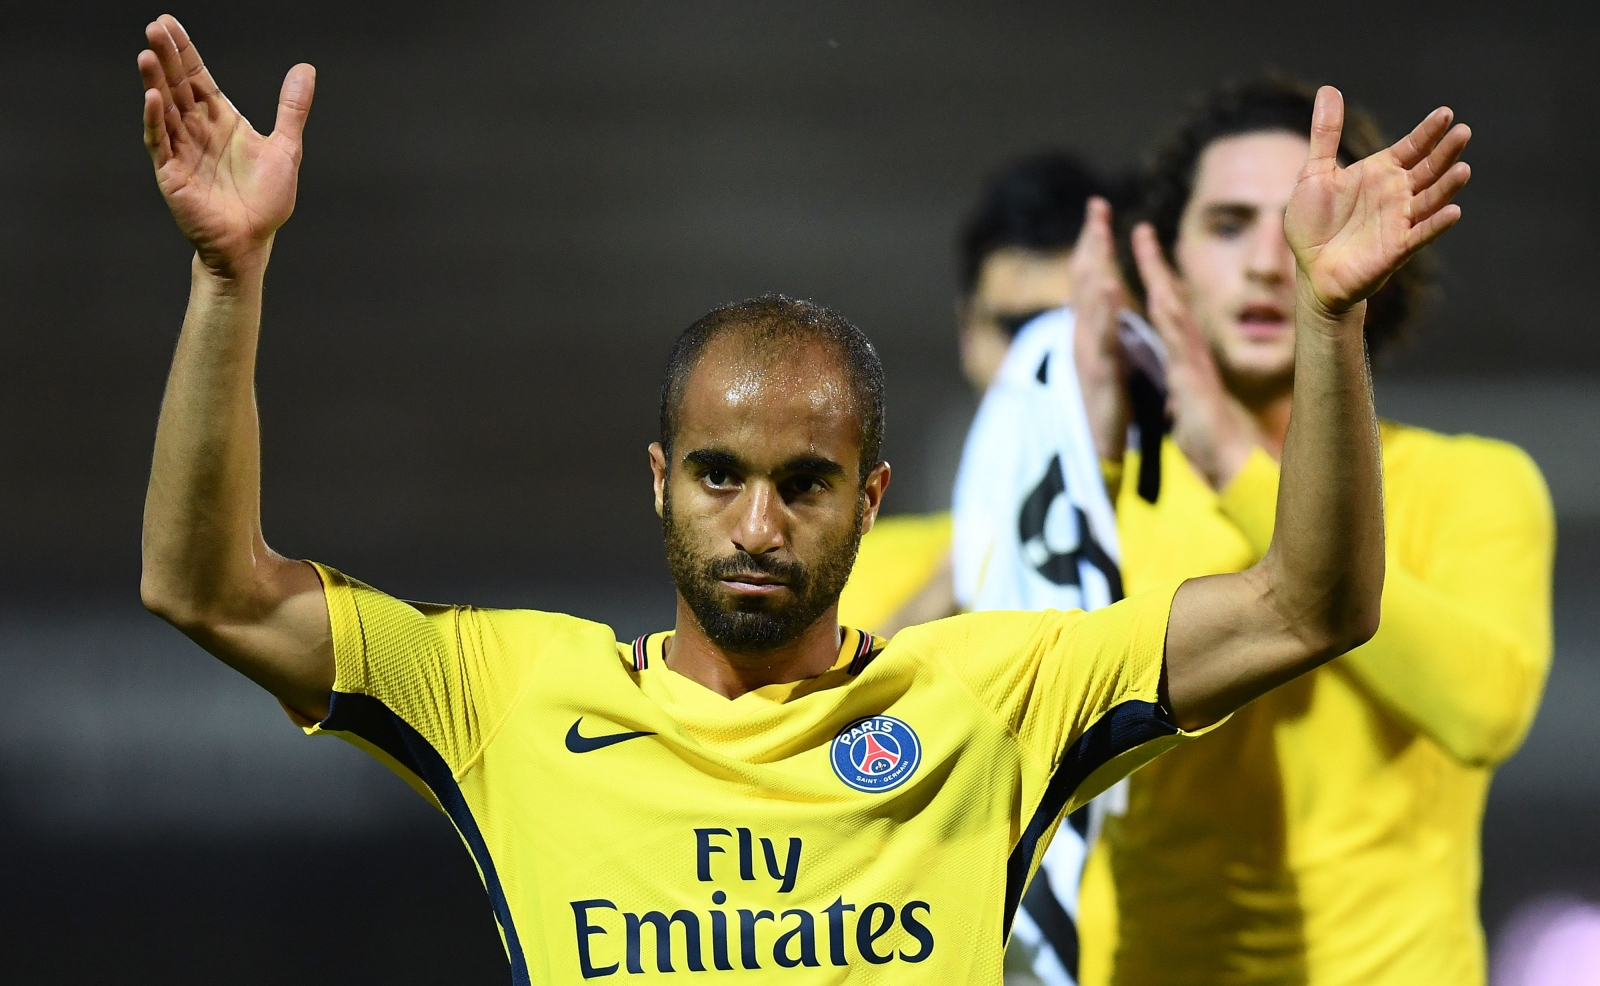 Huge update from Brazil on Man United's move for PSG's Lucas Moura